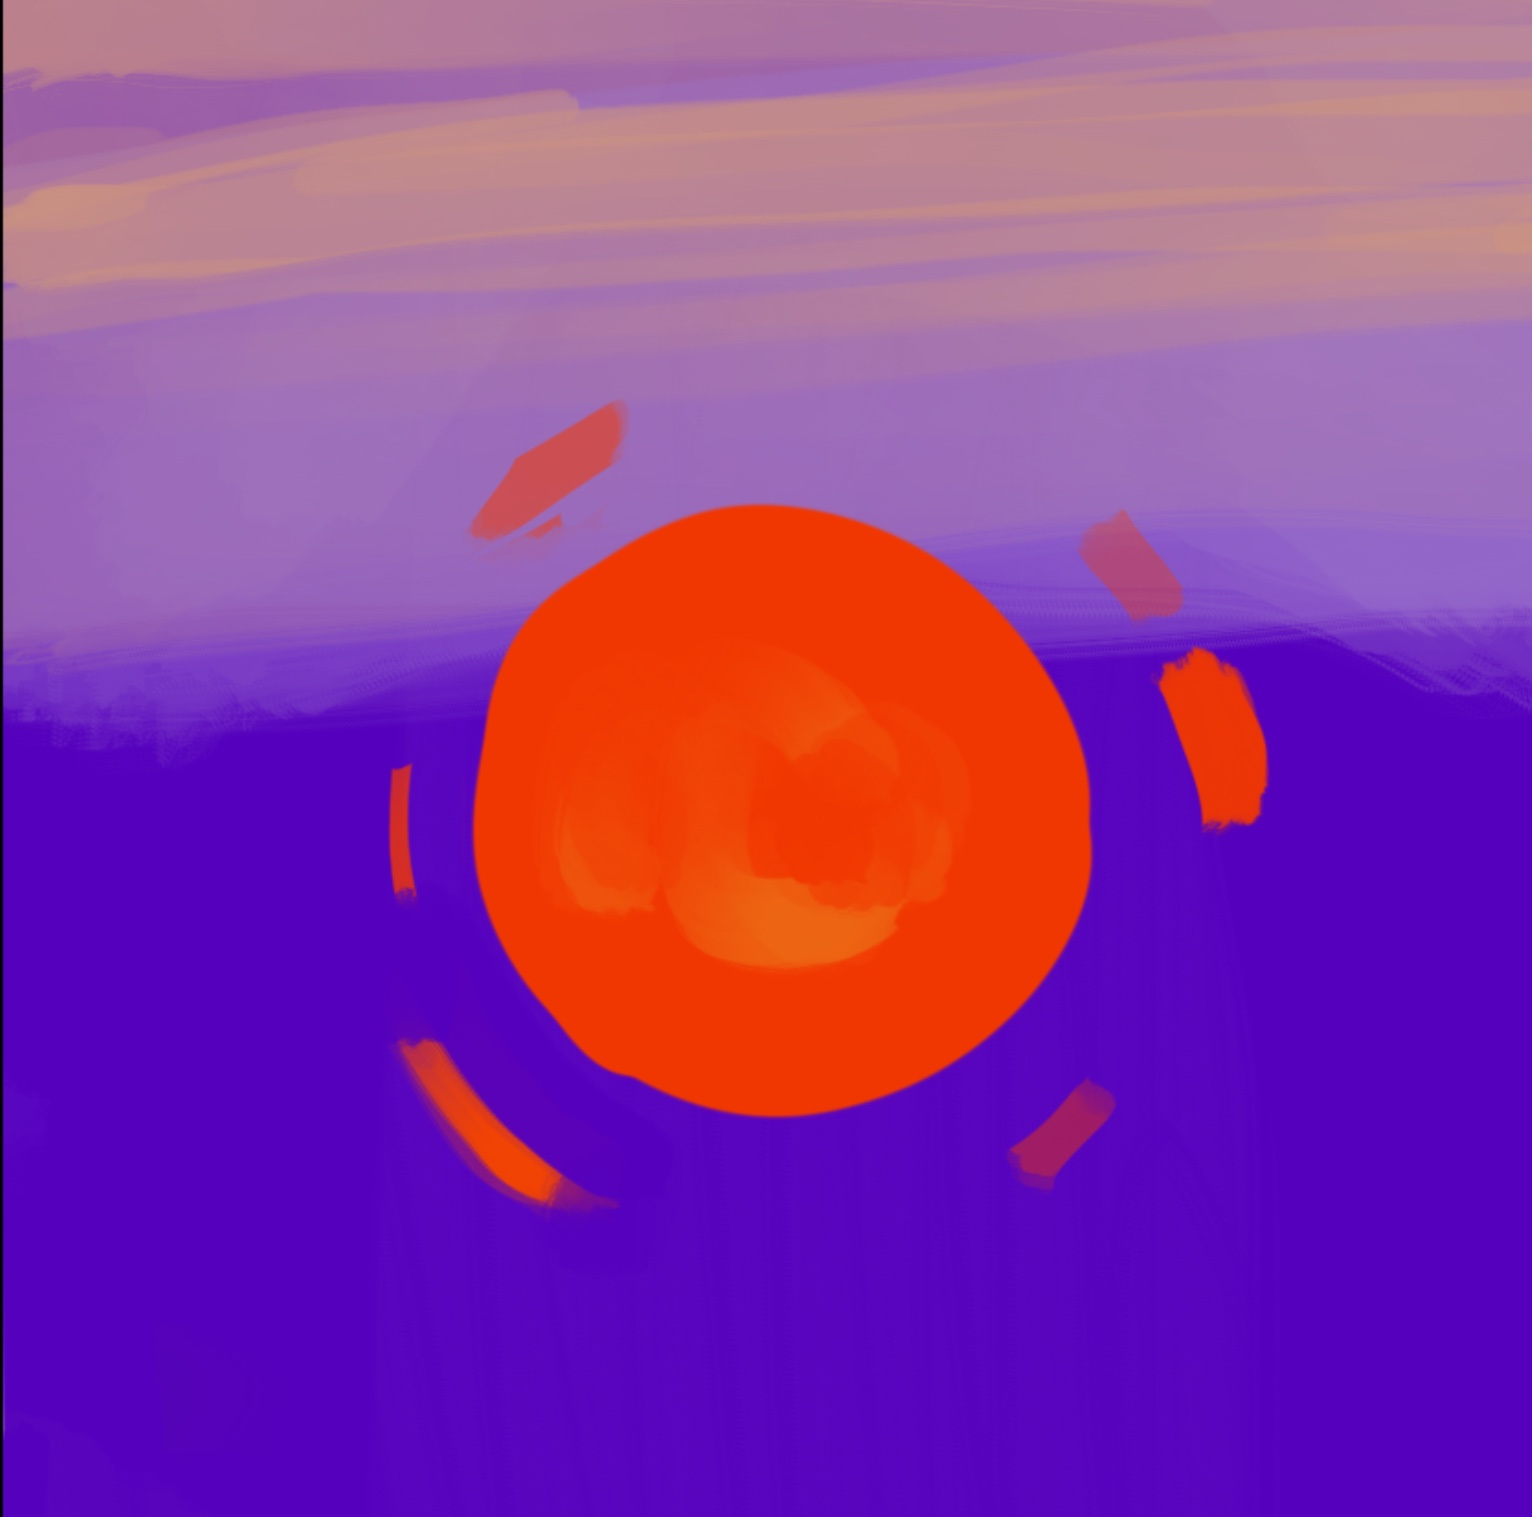 Tilted_Sun_Character_The_Orb.jpg